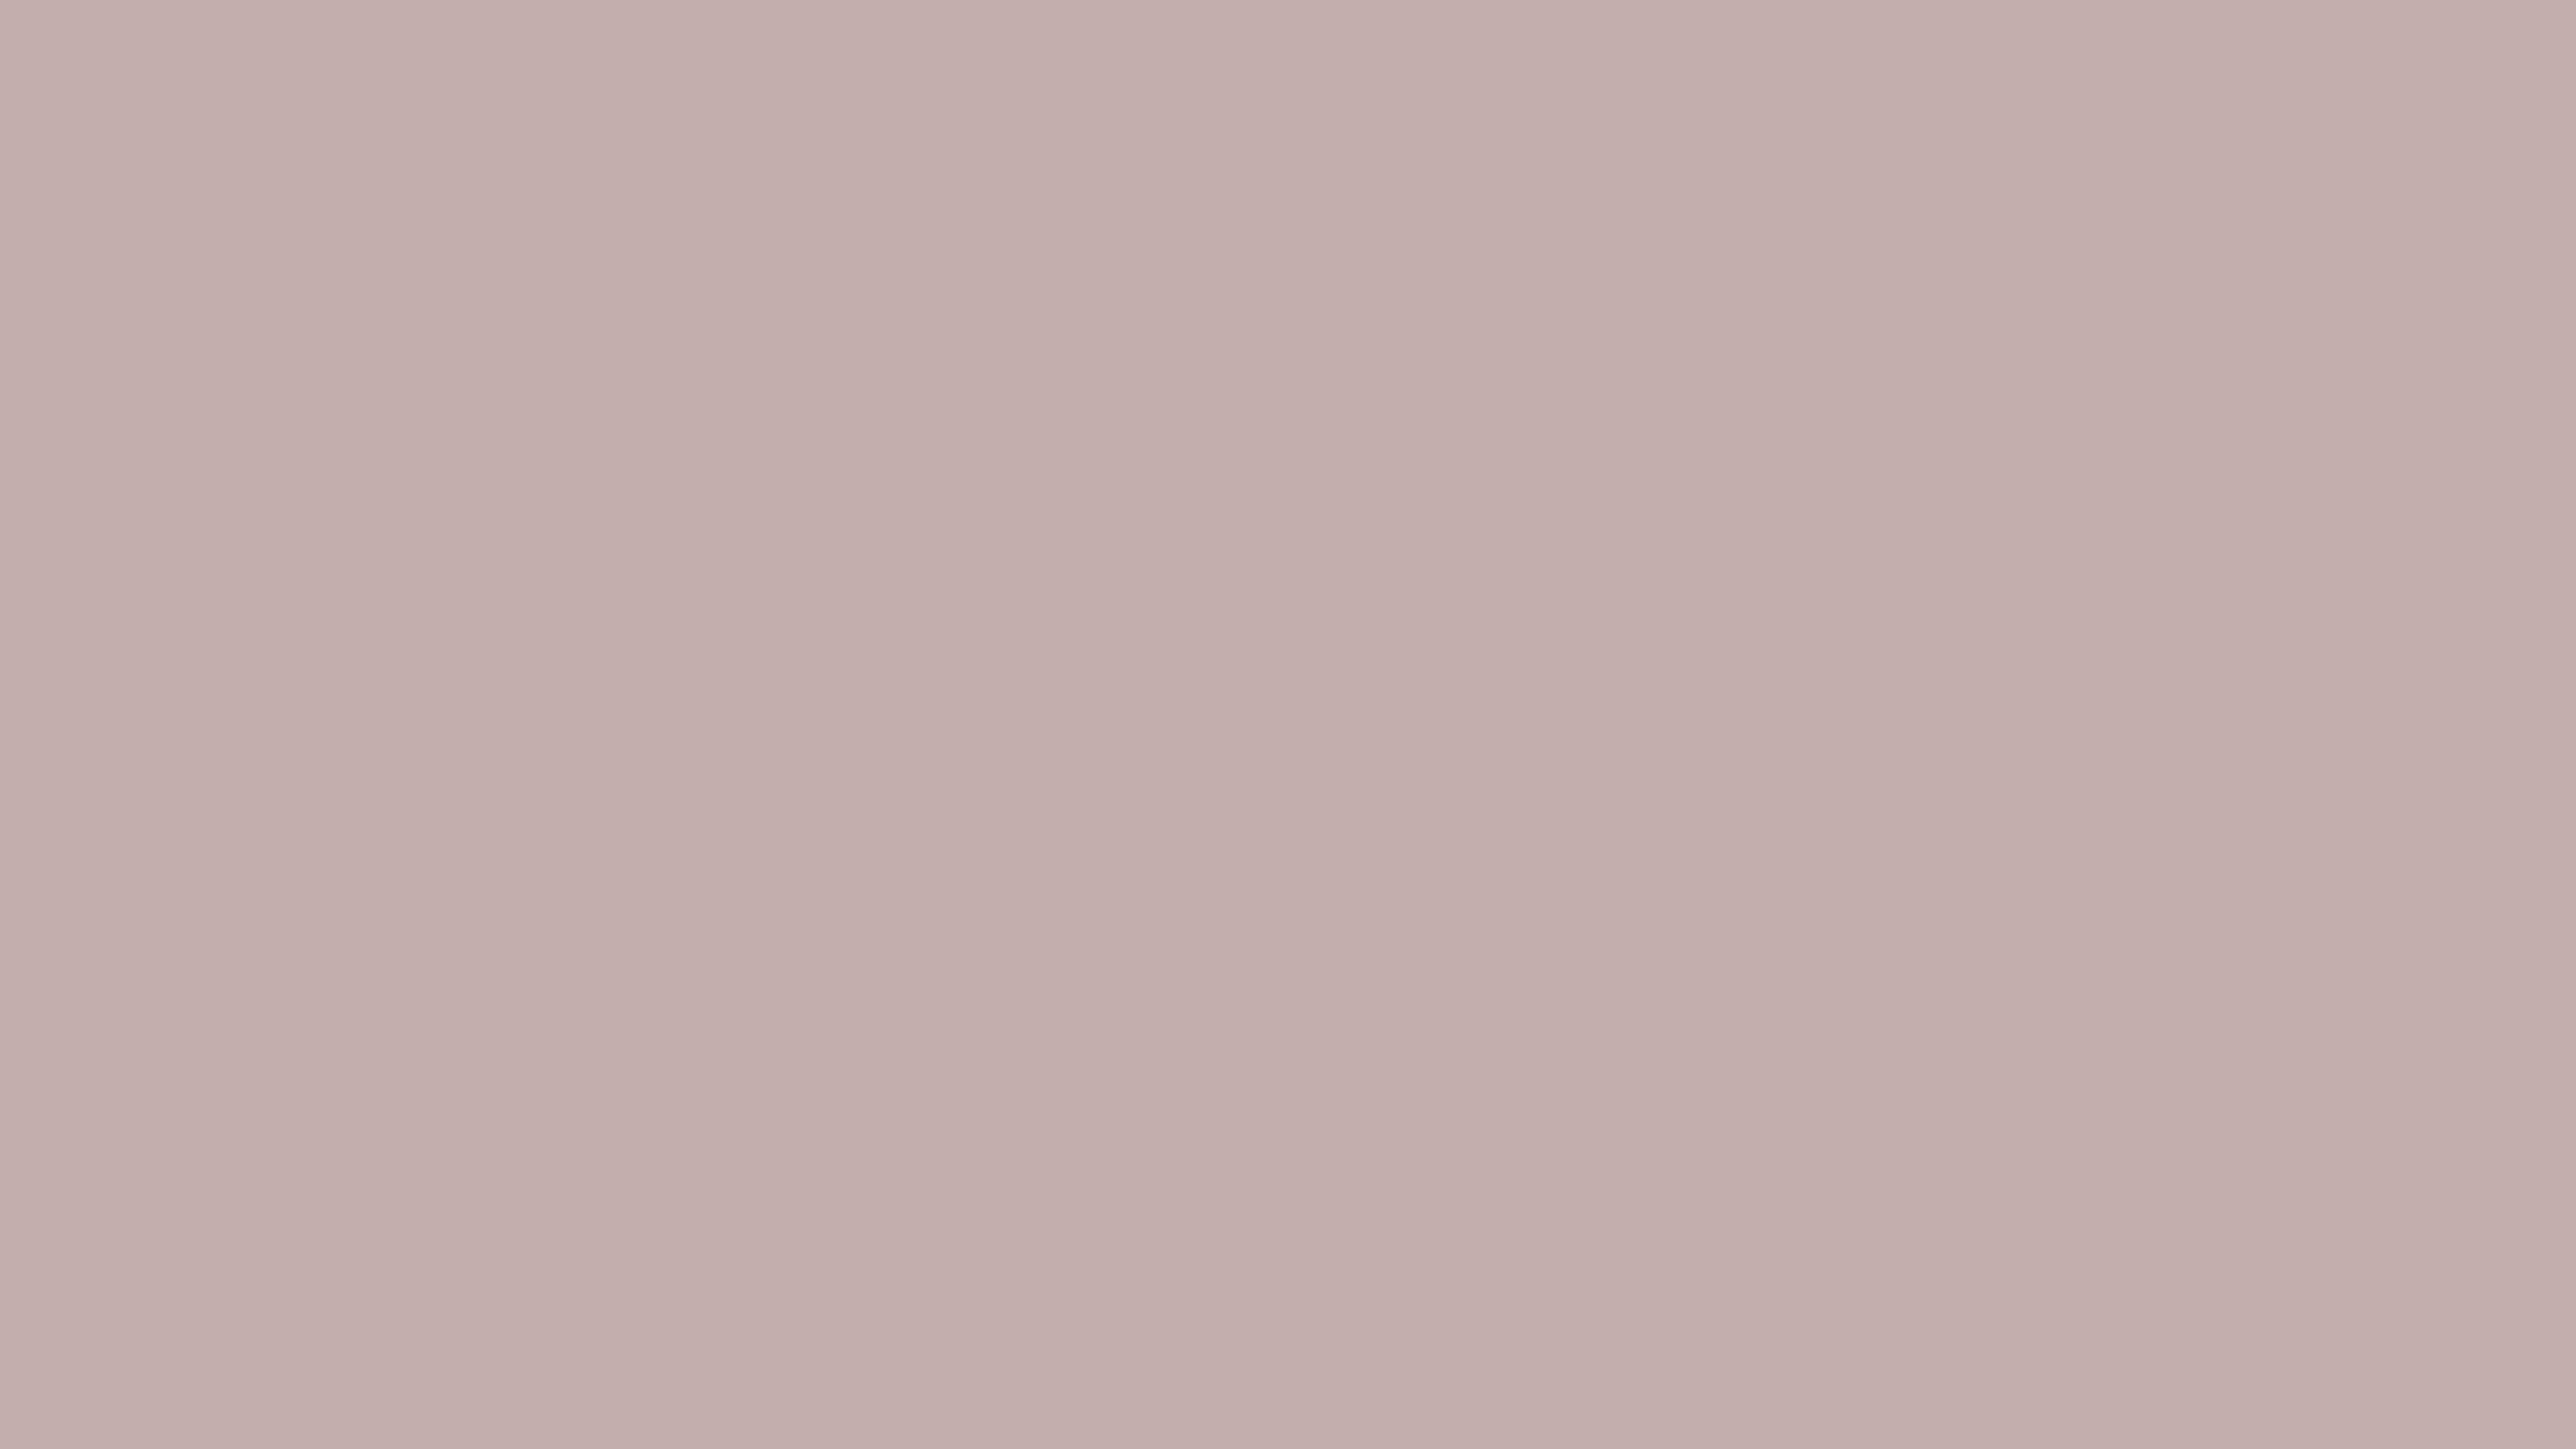 5120x2880 Silver Pink Solid Color Background